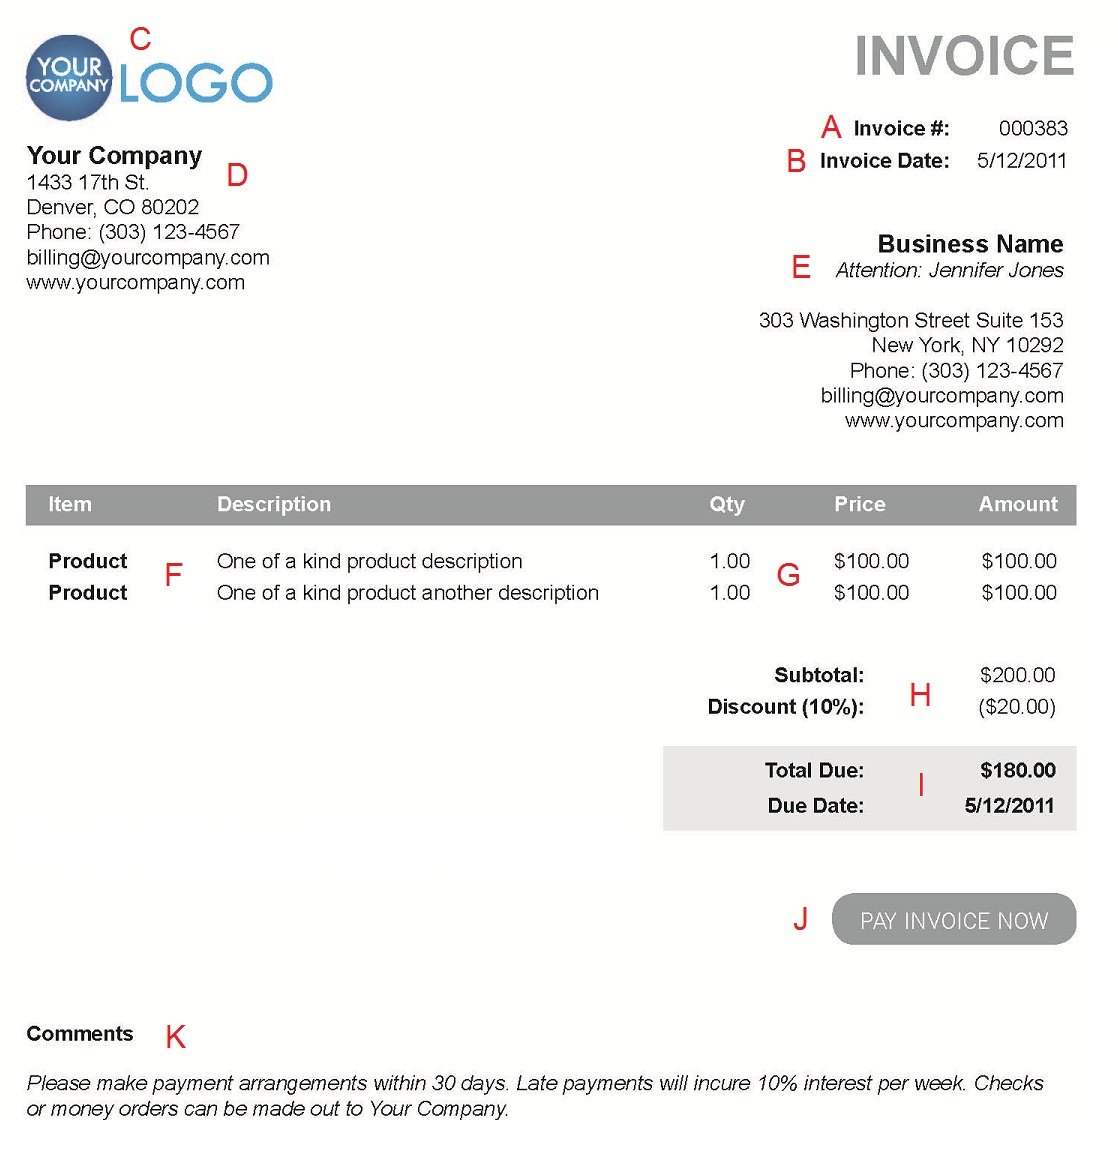 Soulfulpowerus  Marvelous The  Different Sections Of An Electronic Payment Invoice With Likable A  With Astonishing Residential Leaserental Agreement And Deposit Receipt Also Returning To Target Without Receipt In Addition Small Business Receipts And Enterprise Car Rental Receipts As Well As Crock Pot Receipts Additionally Where Can I Buy Receipt Books From Paysimplecom With Soulfulpowerus  Likable The  Different Sections Of An Electronic Payment Invoice With Astonishing A  And Marvelous Residential Leaserental Agreement And Deposit Receipt Also Returning To Target Without Receipt In Addition Small Business Receipts From Paysimplecom